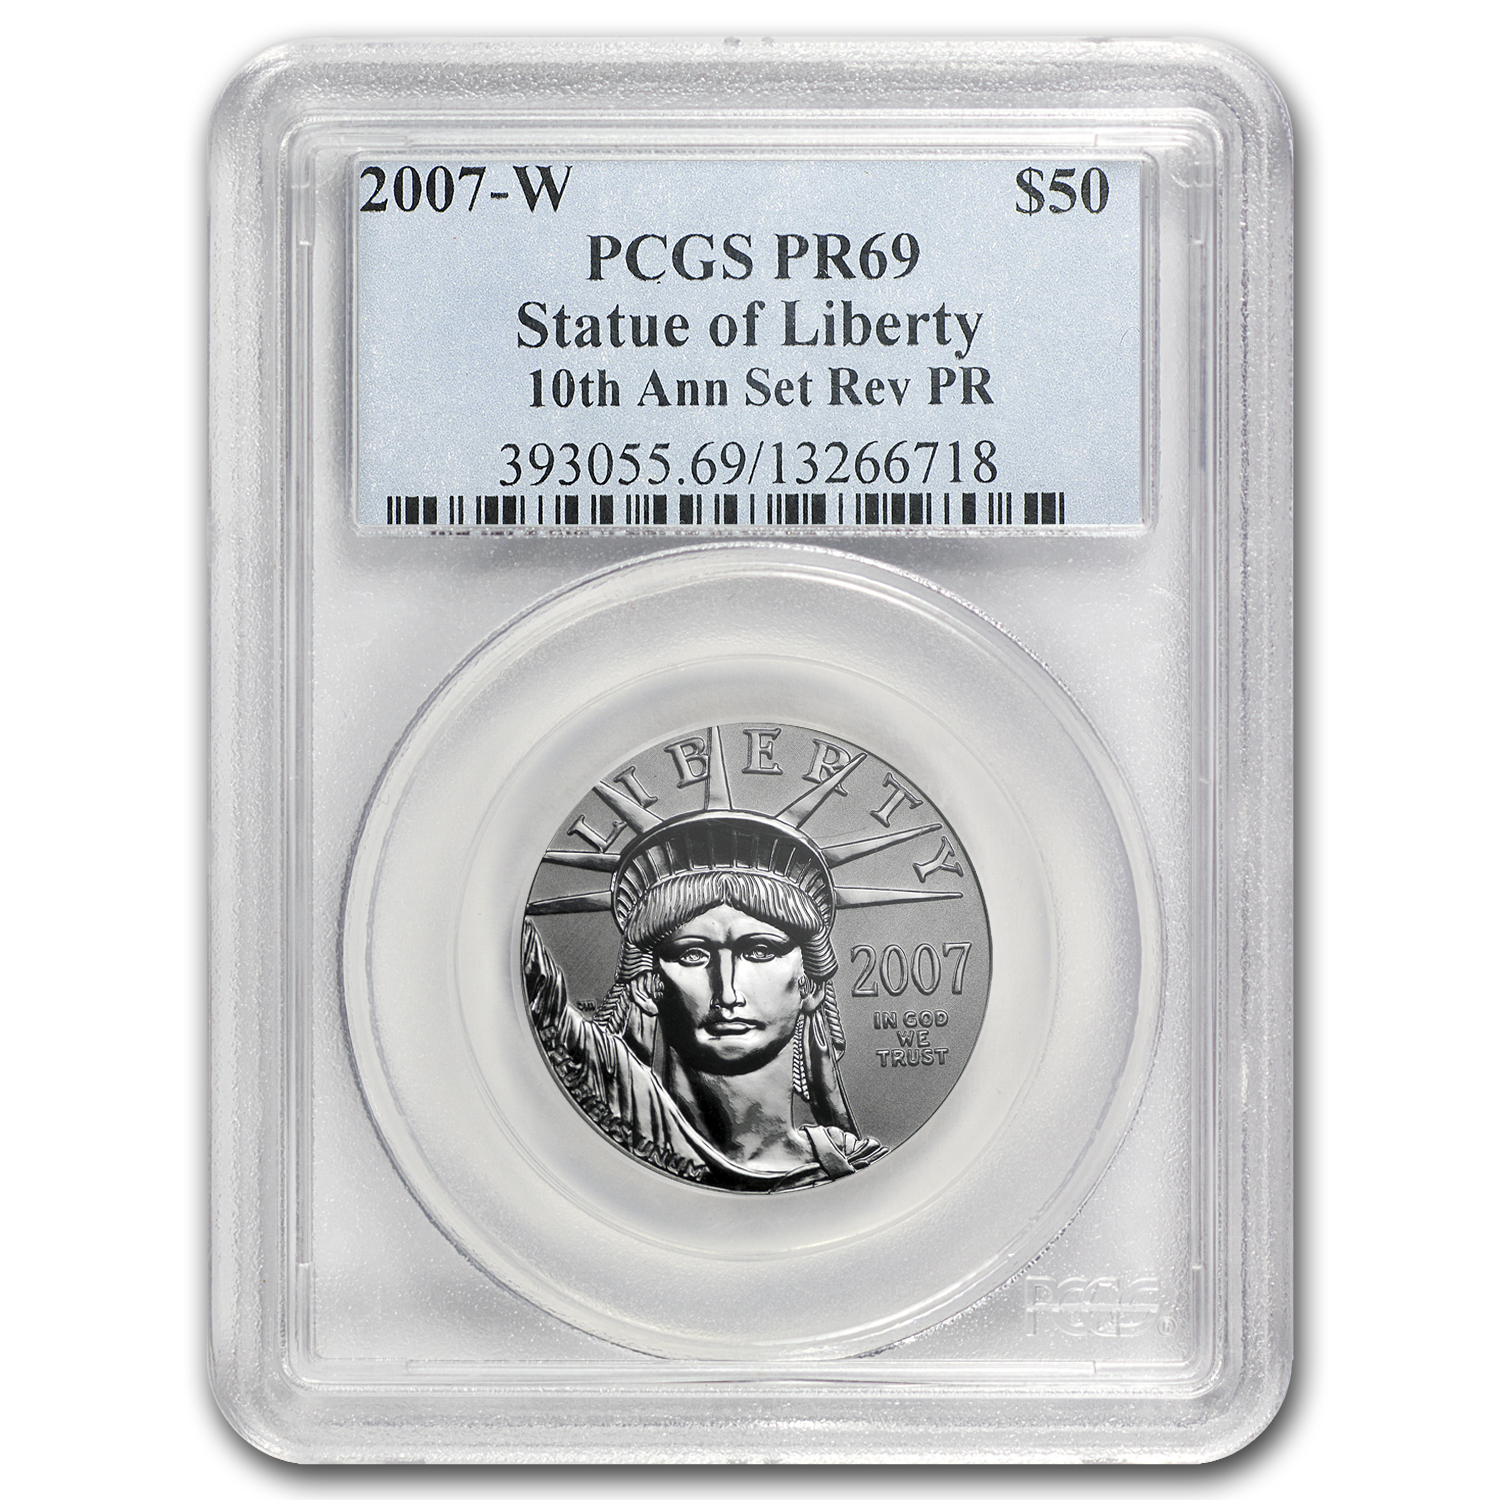 2007-W 2-Coin Proof Platinum Eagle Set PR-69 PCGS (10th Anniv)